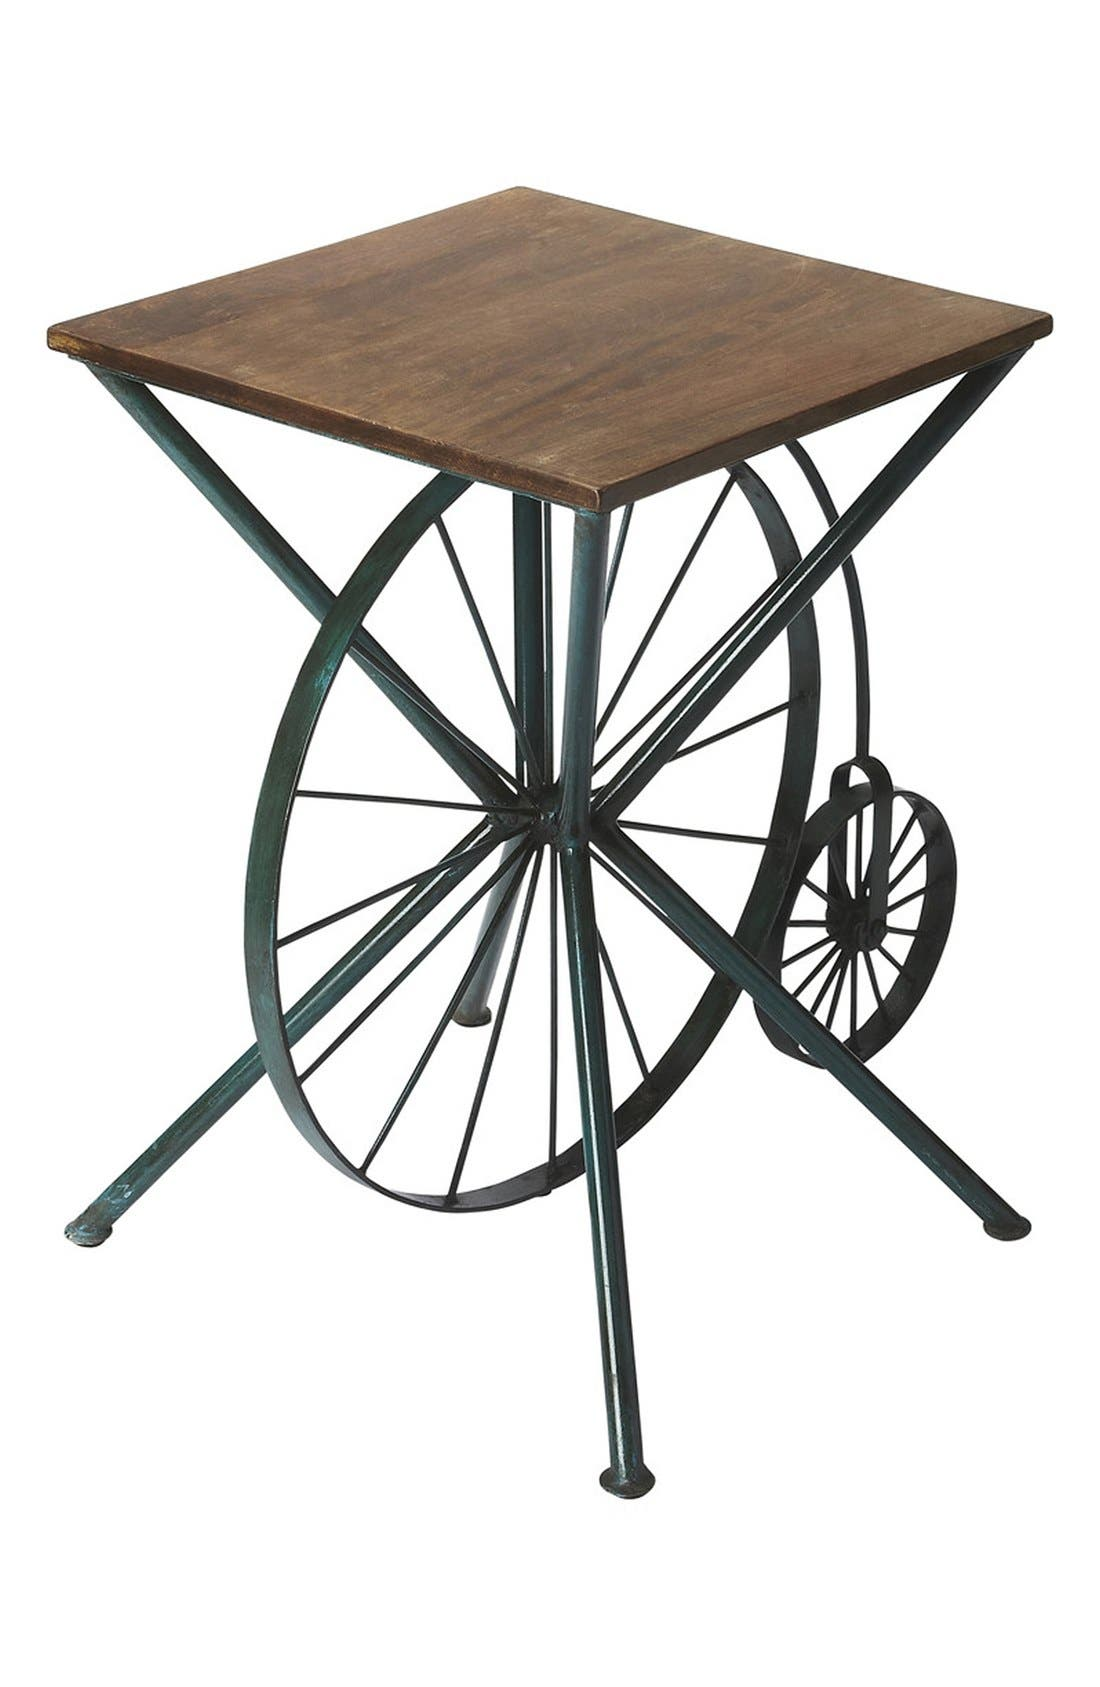 Alternate Image 1 Selected - Butler Bicycle Accent Table